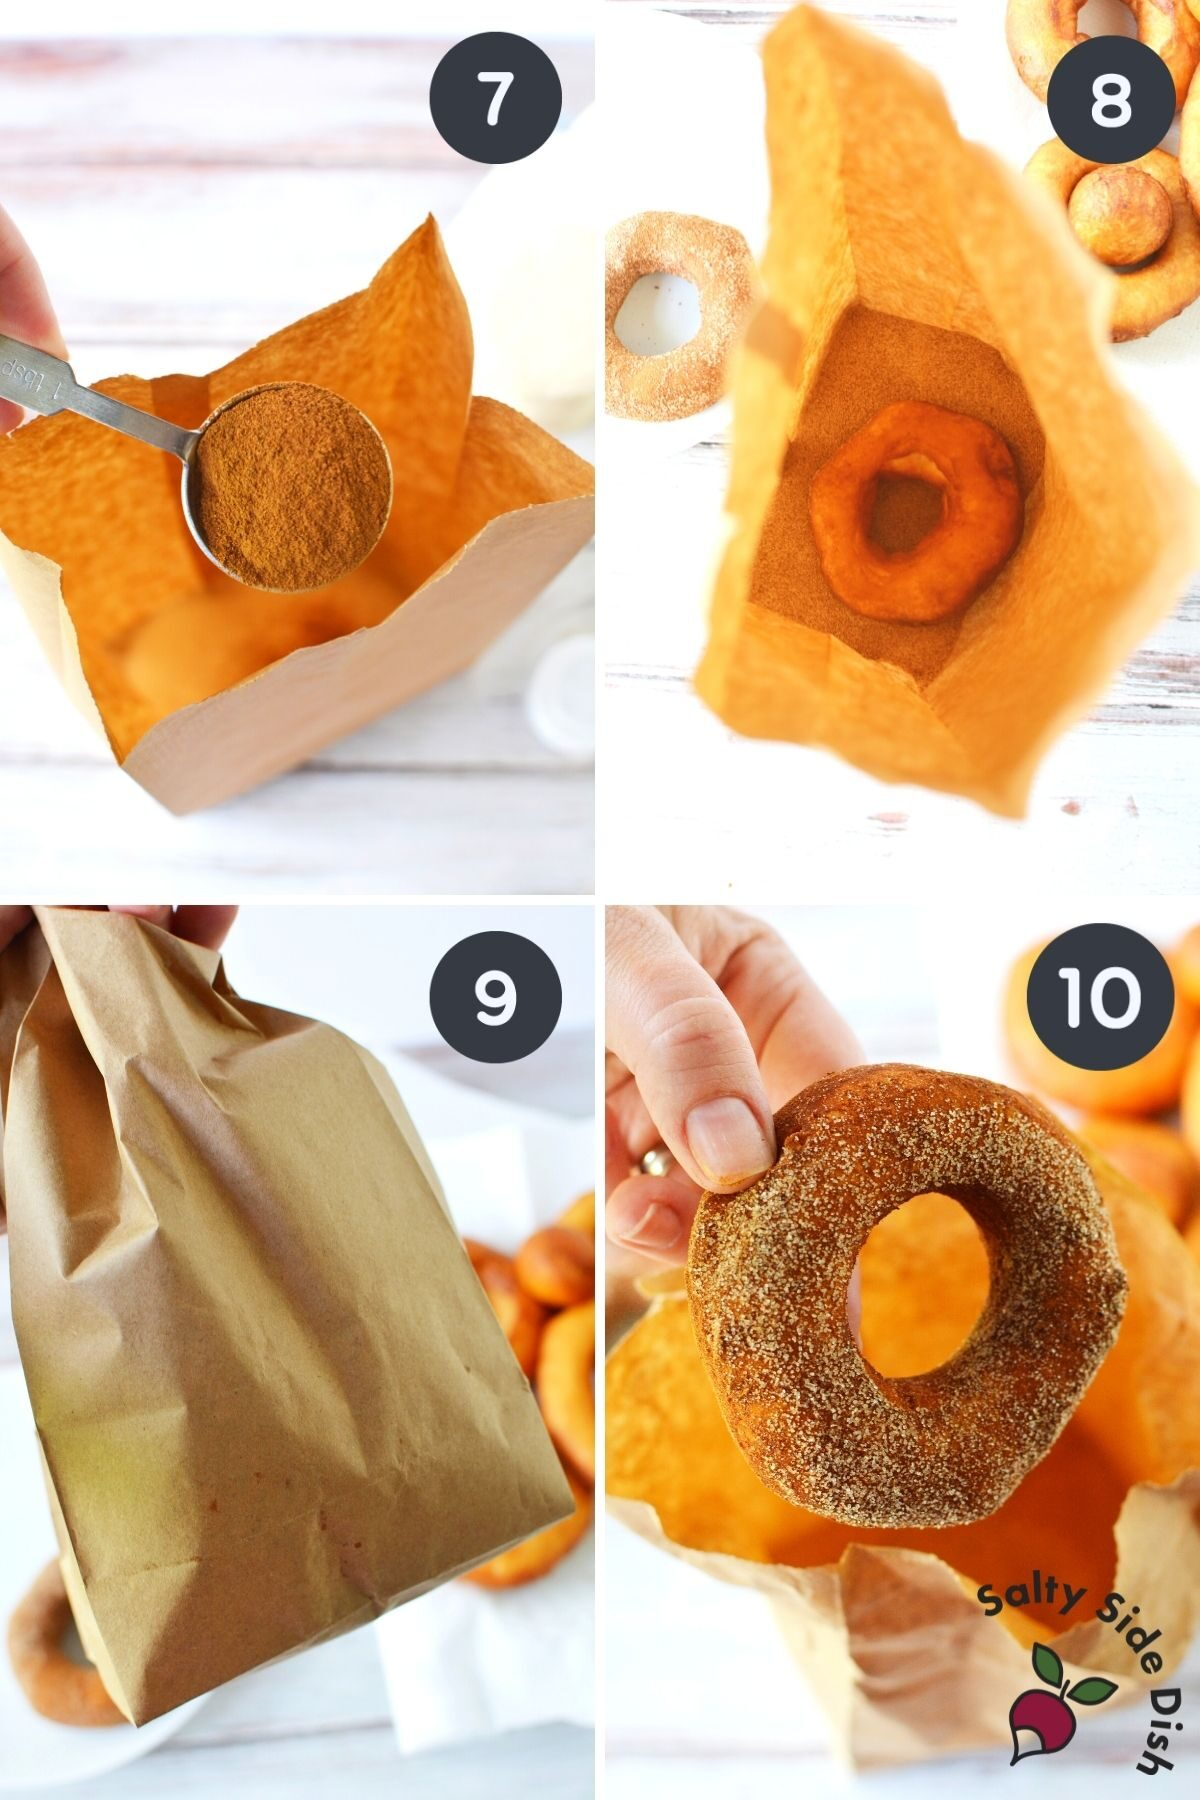 4 image collage of adding cinnamon to bag and shaking freshly made donuts